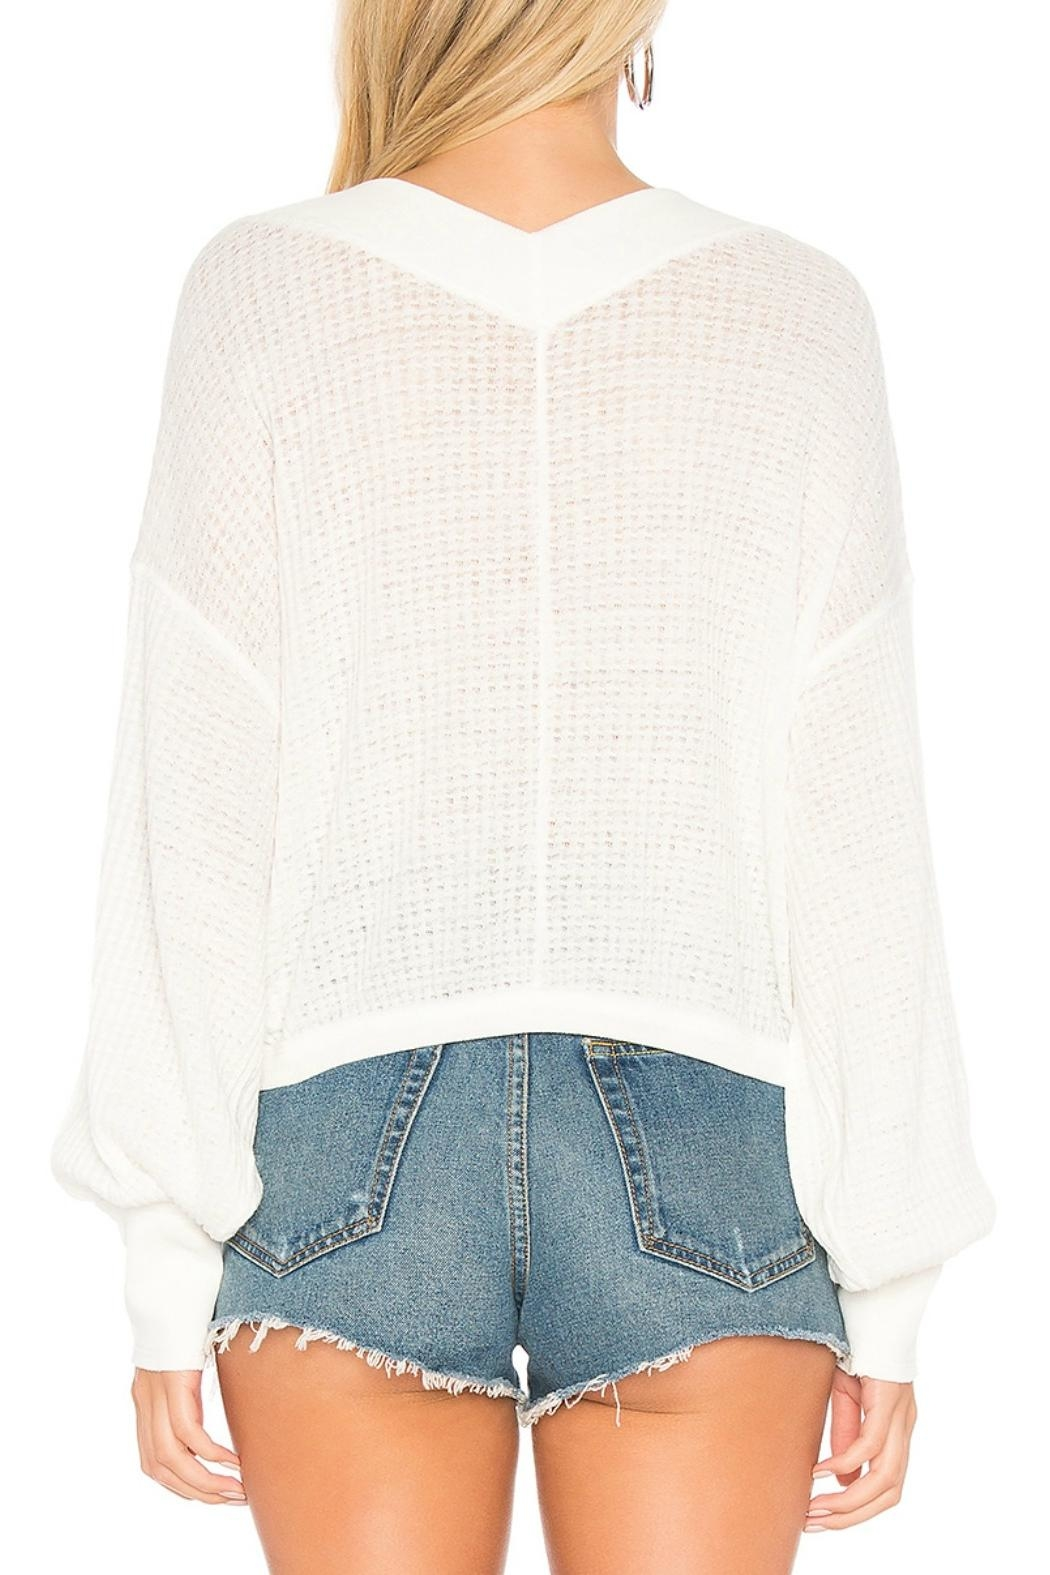 Free People Thermal Top - Front Full Image